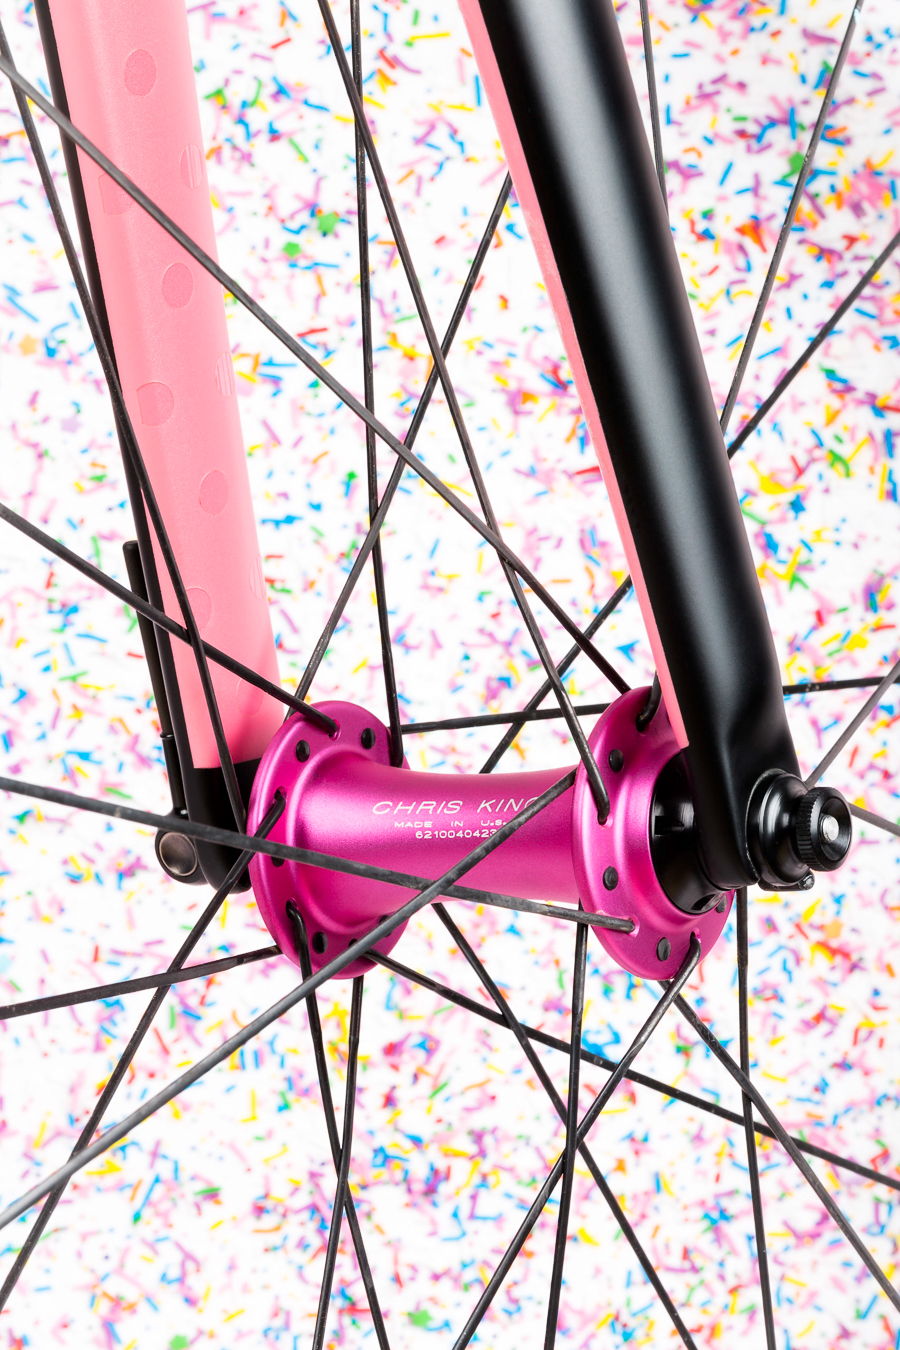 The new Chris King matte Punch Pink hubs are a bold choice. Like extra sprinkles on your birthday cake.